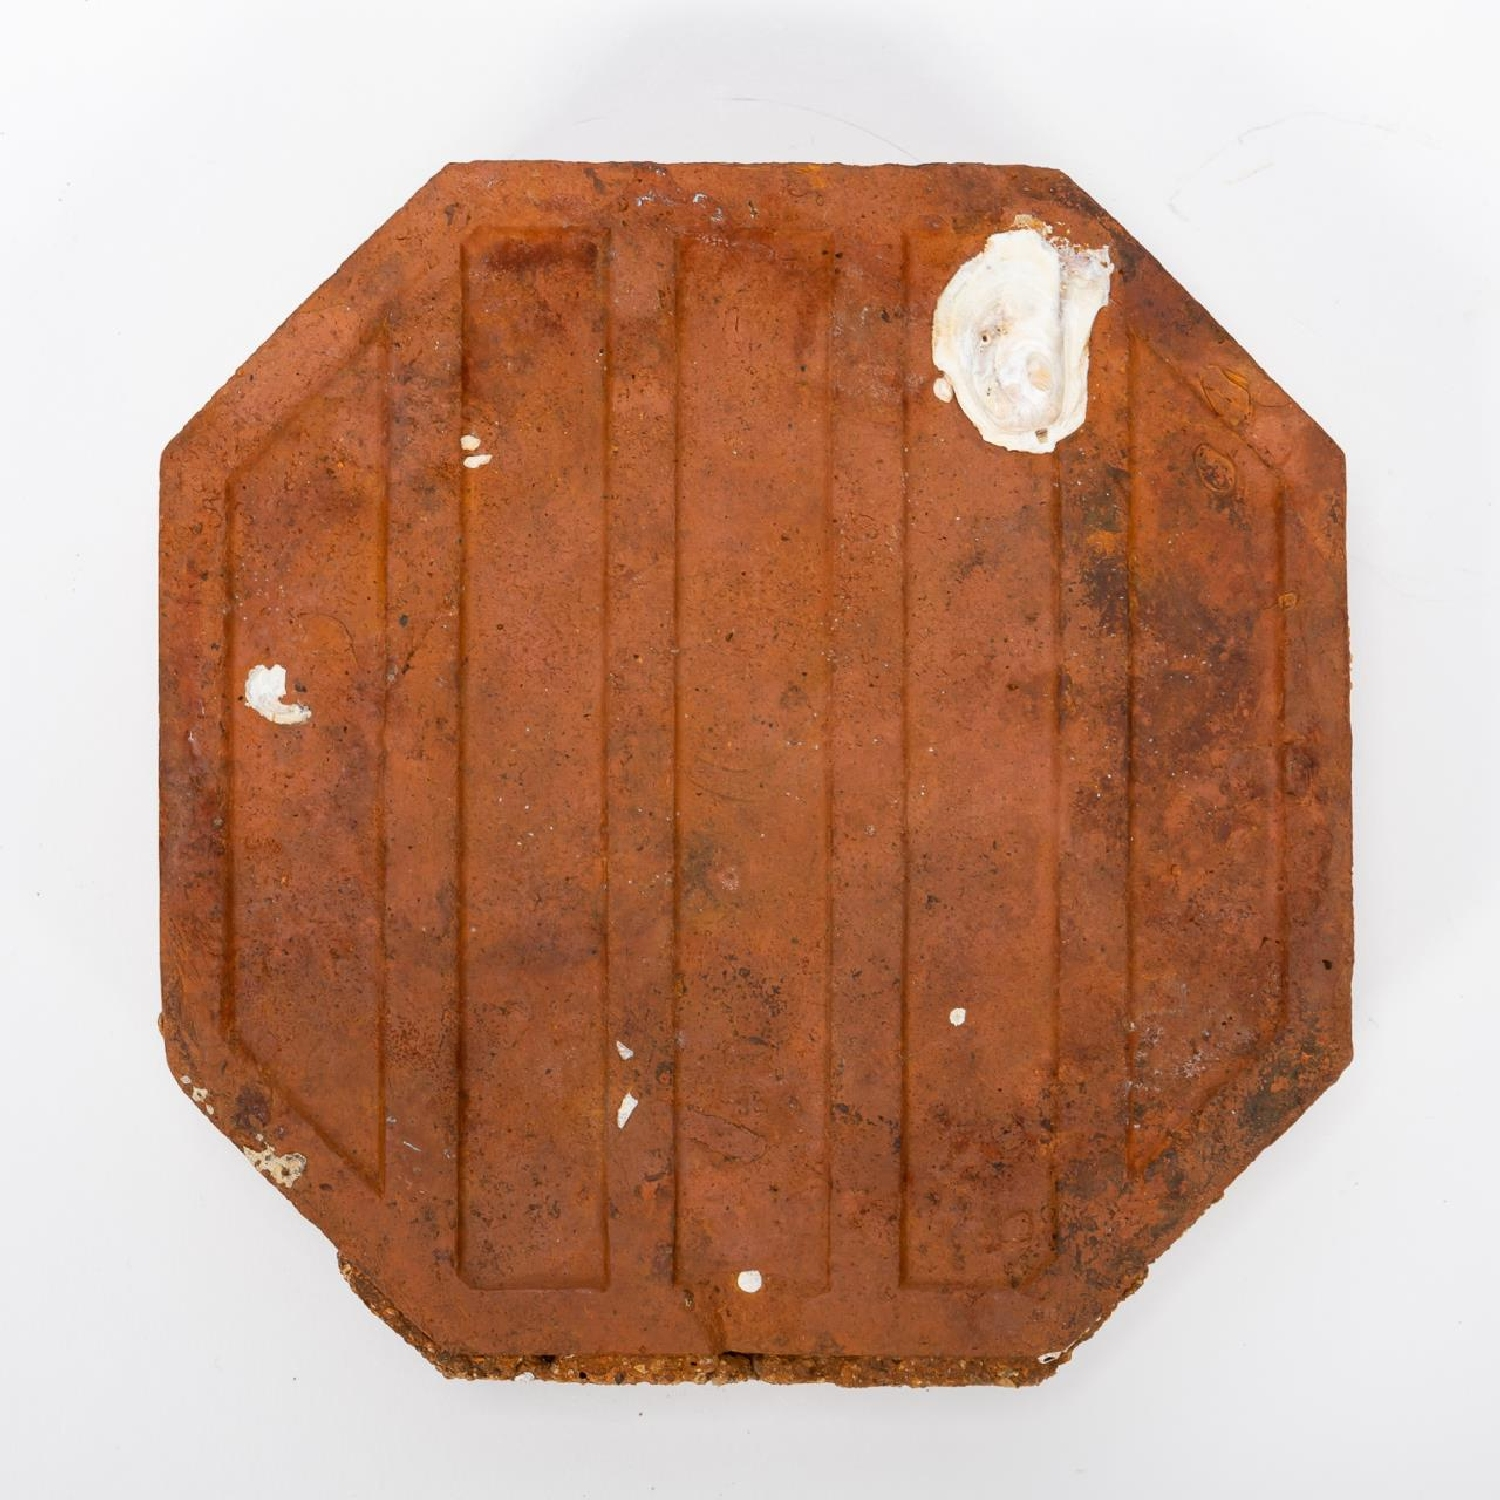 RMS CARPATHIA, SALVAGED RED OCTAGONAL FLOOR TILE - Image 2 of 7